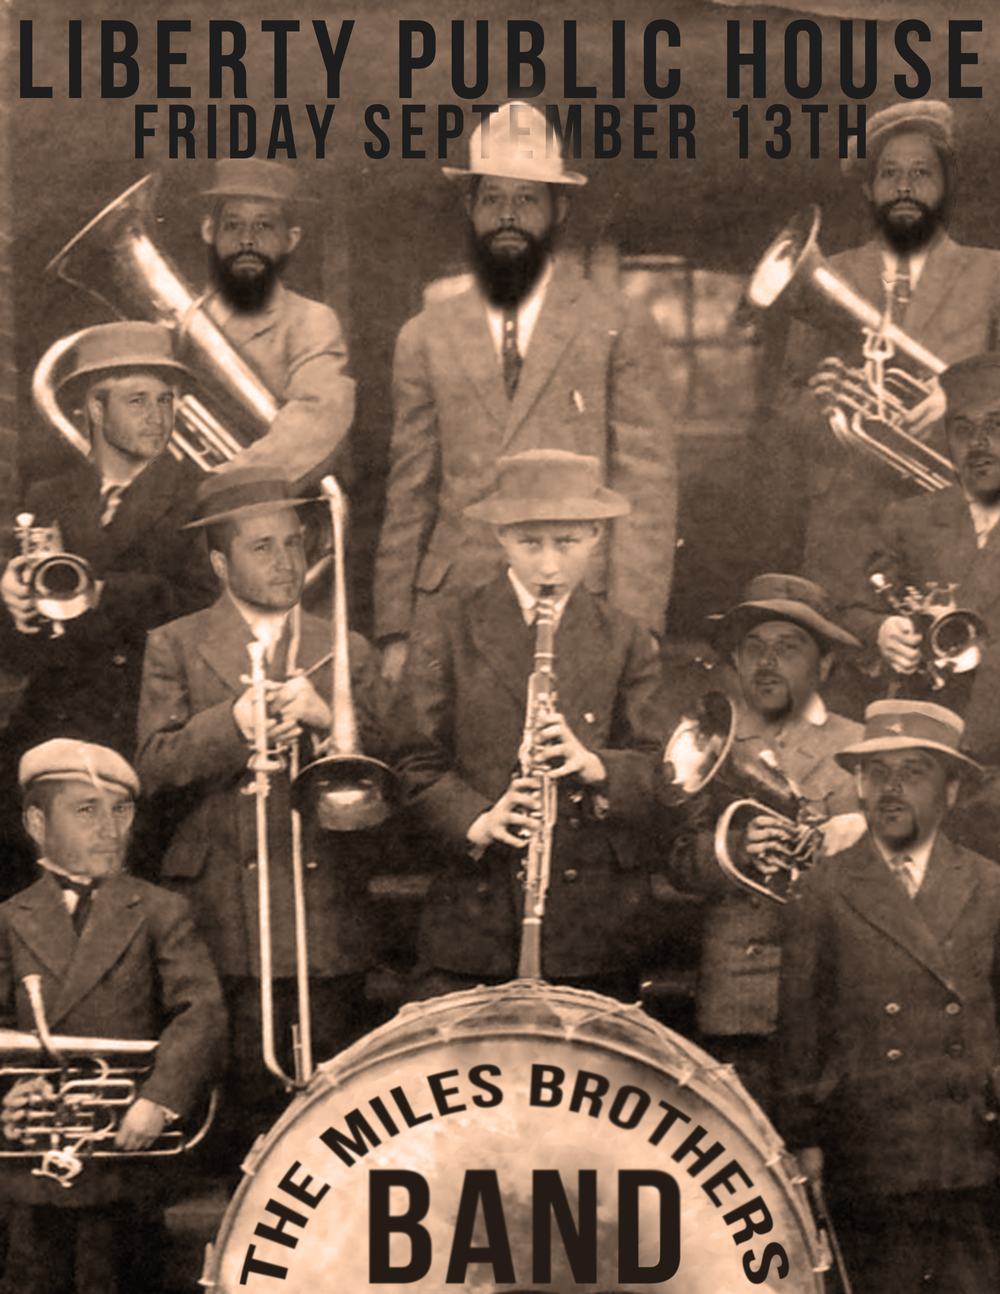 Miles Brothers Sept 13.jpg